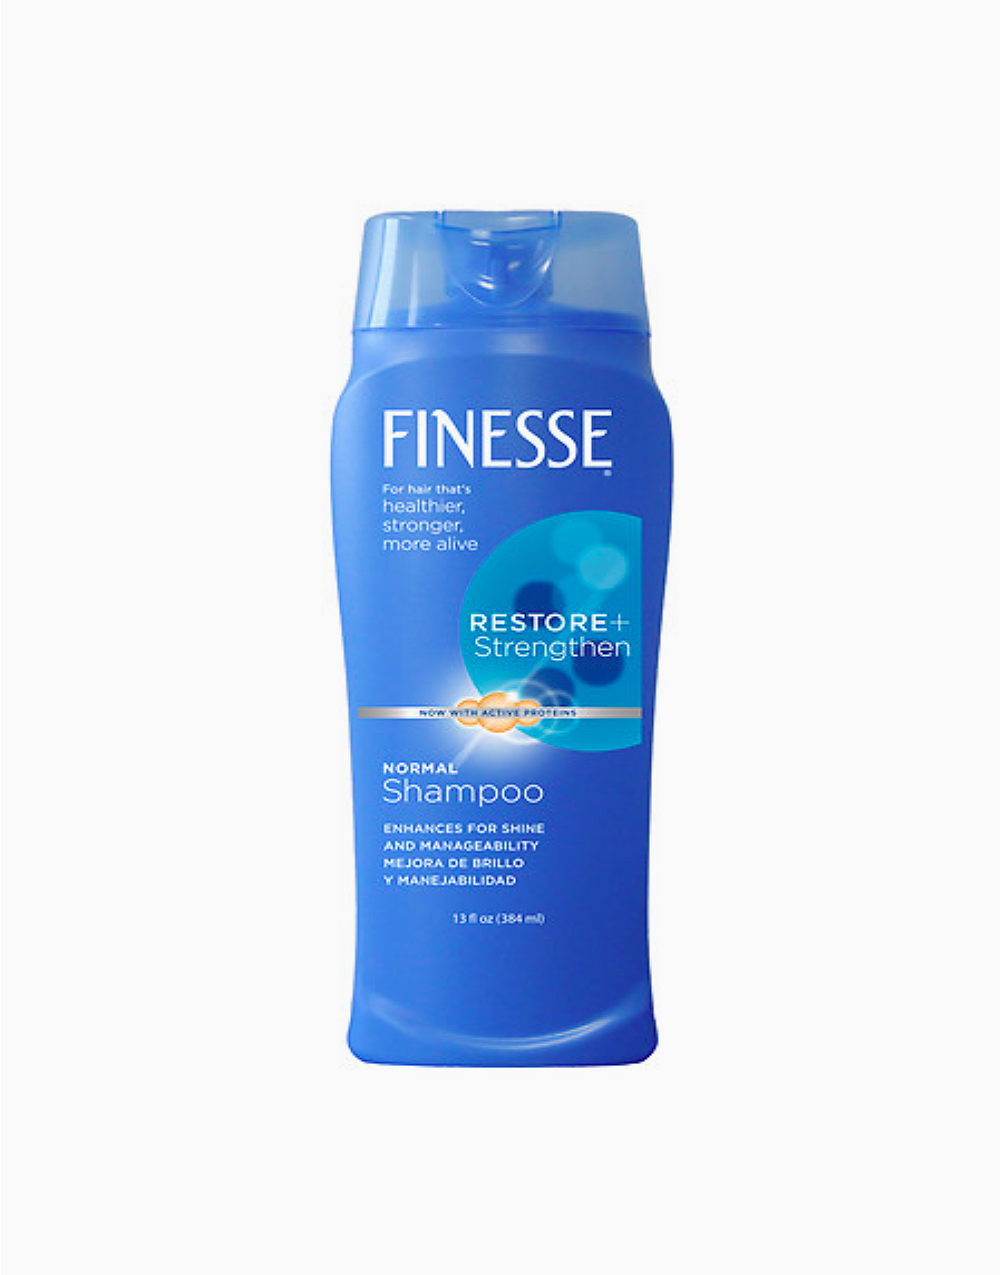 Normal Shampoo (13oz) by Finesse